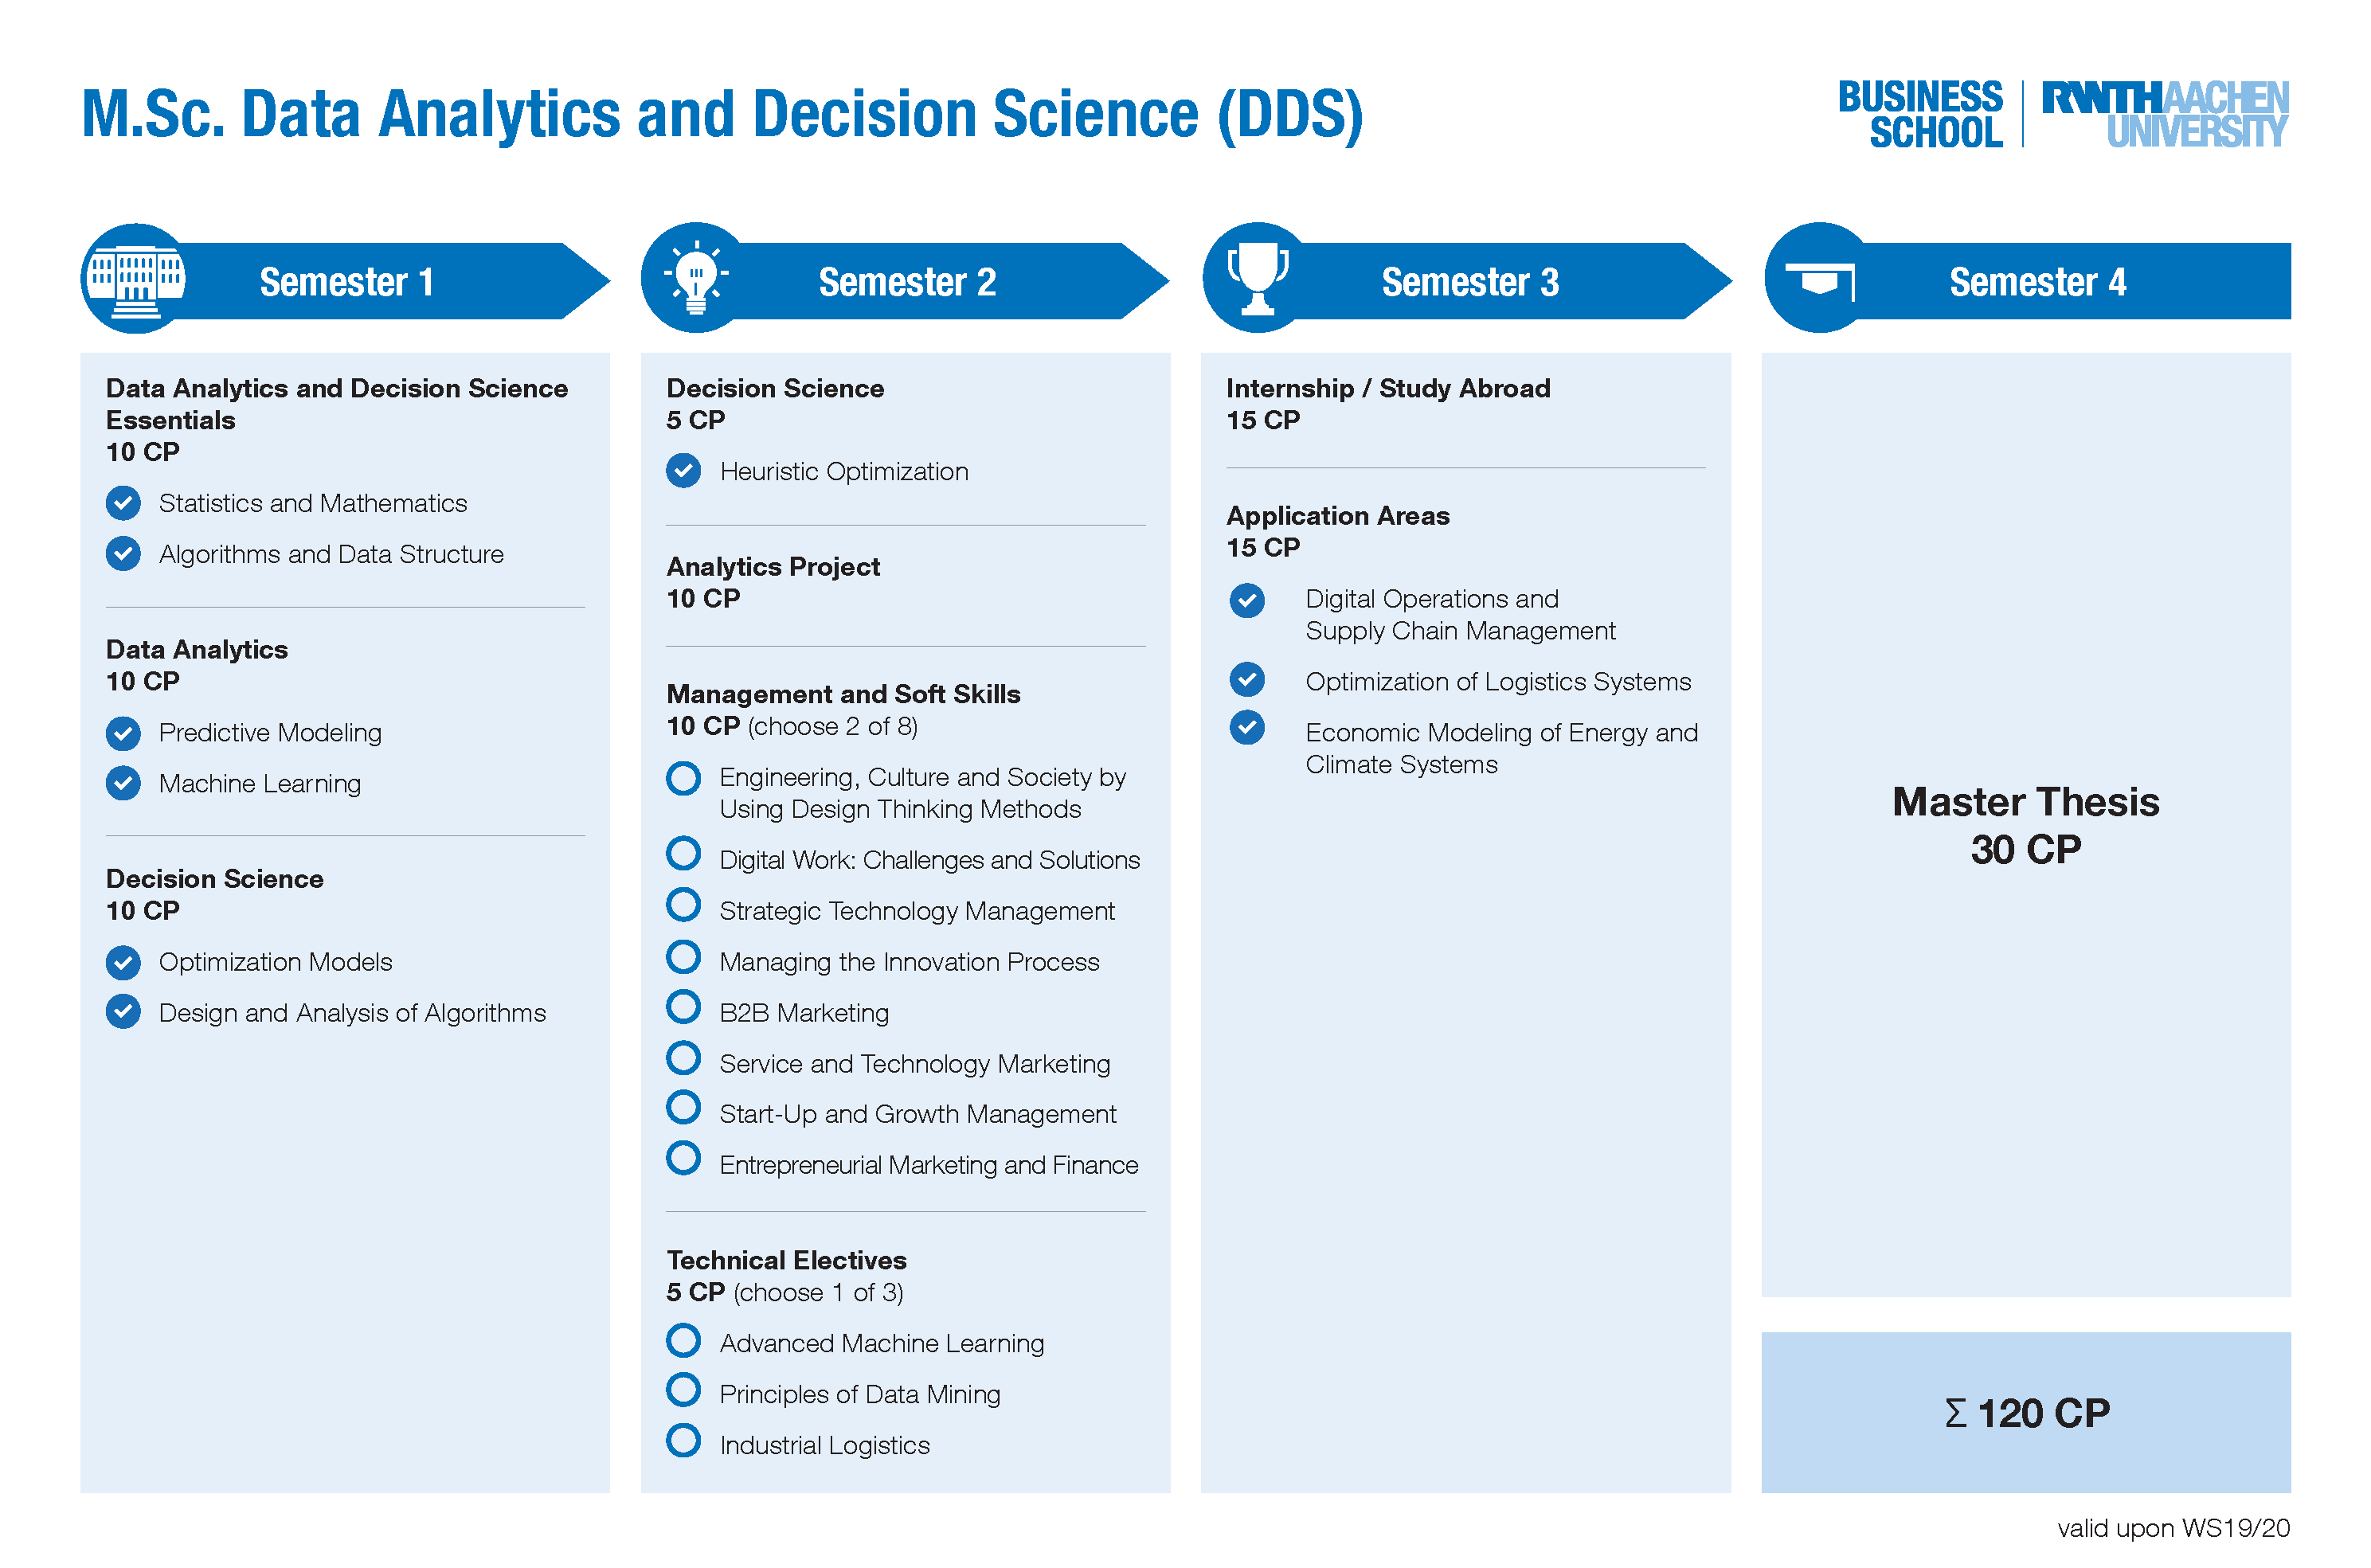 M  Sc  Data Analytics and Decision Science | RWTH Business School